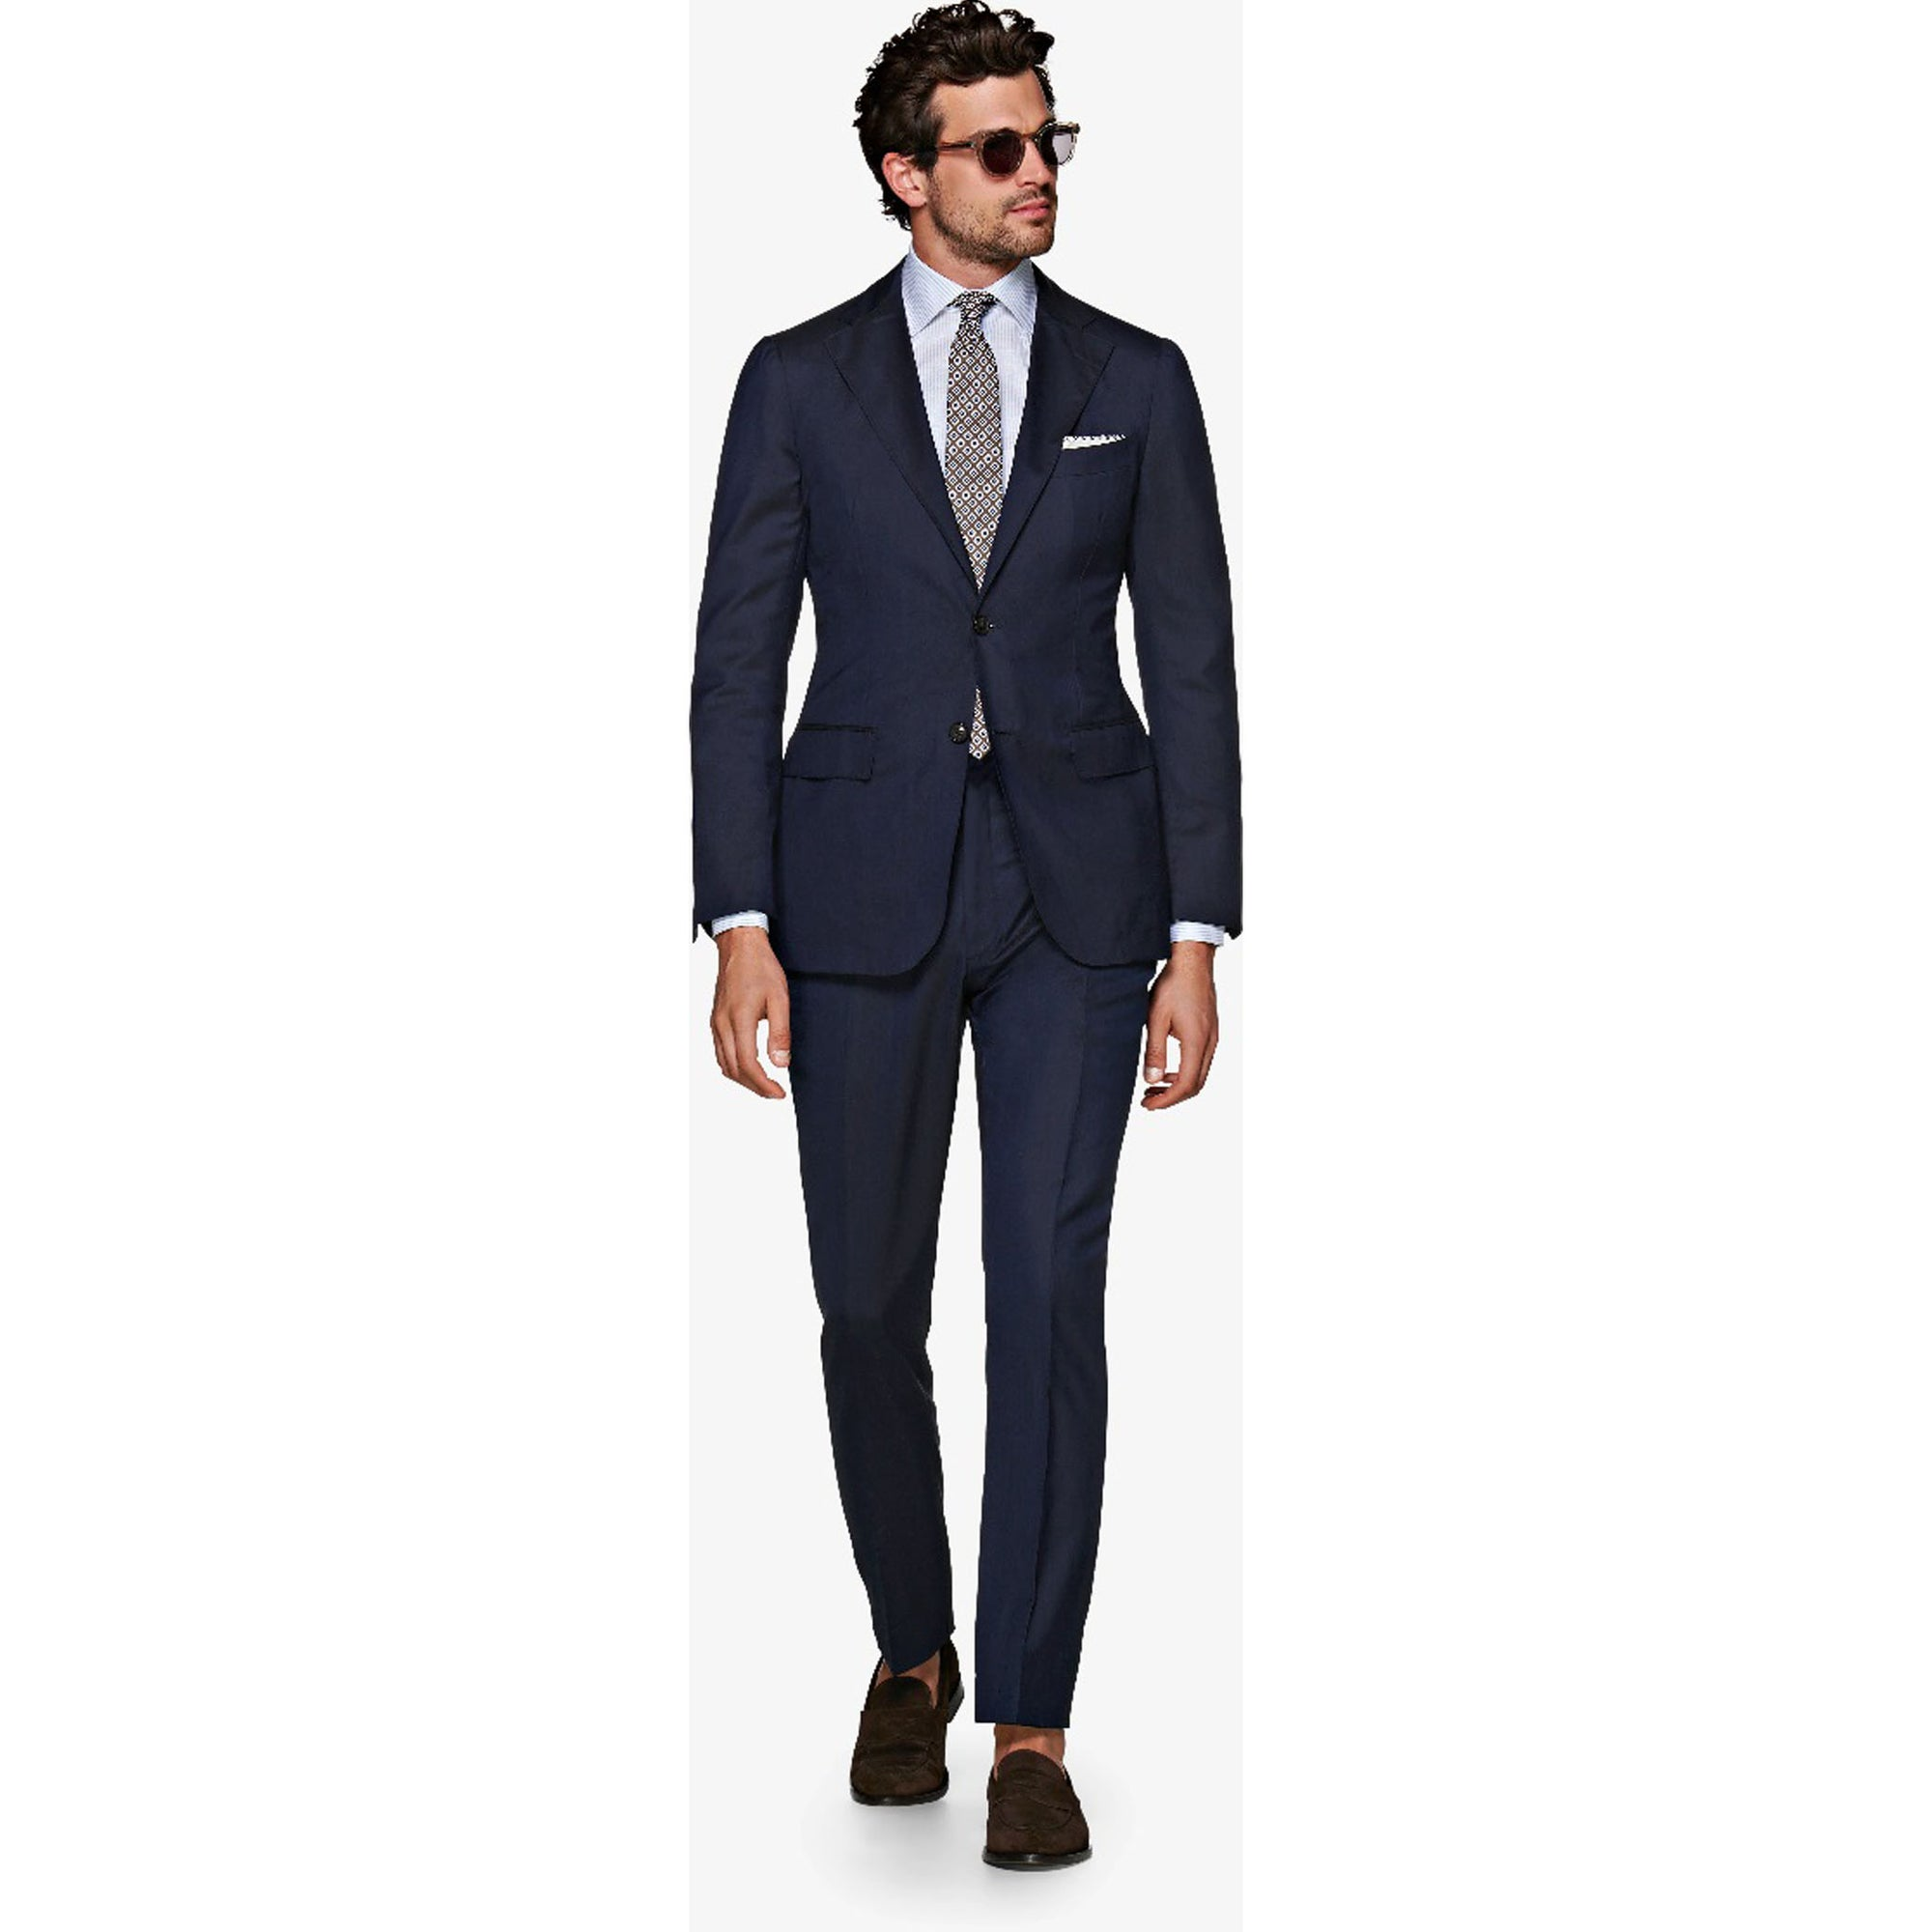 The Interview Suit - A Guide to Choosing an Appropriate Interview Suit (Works for Wedding Suits too!)